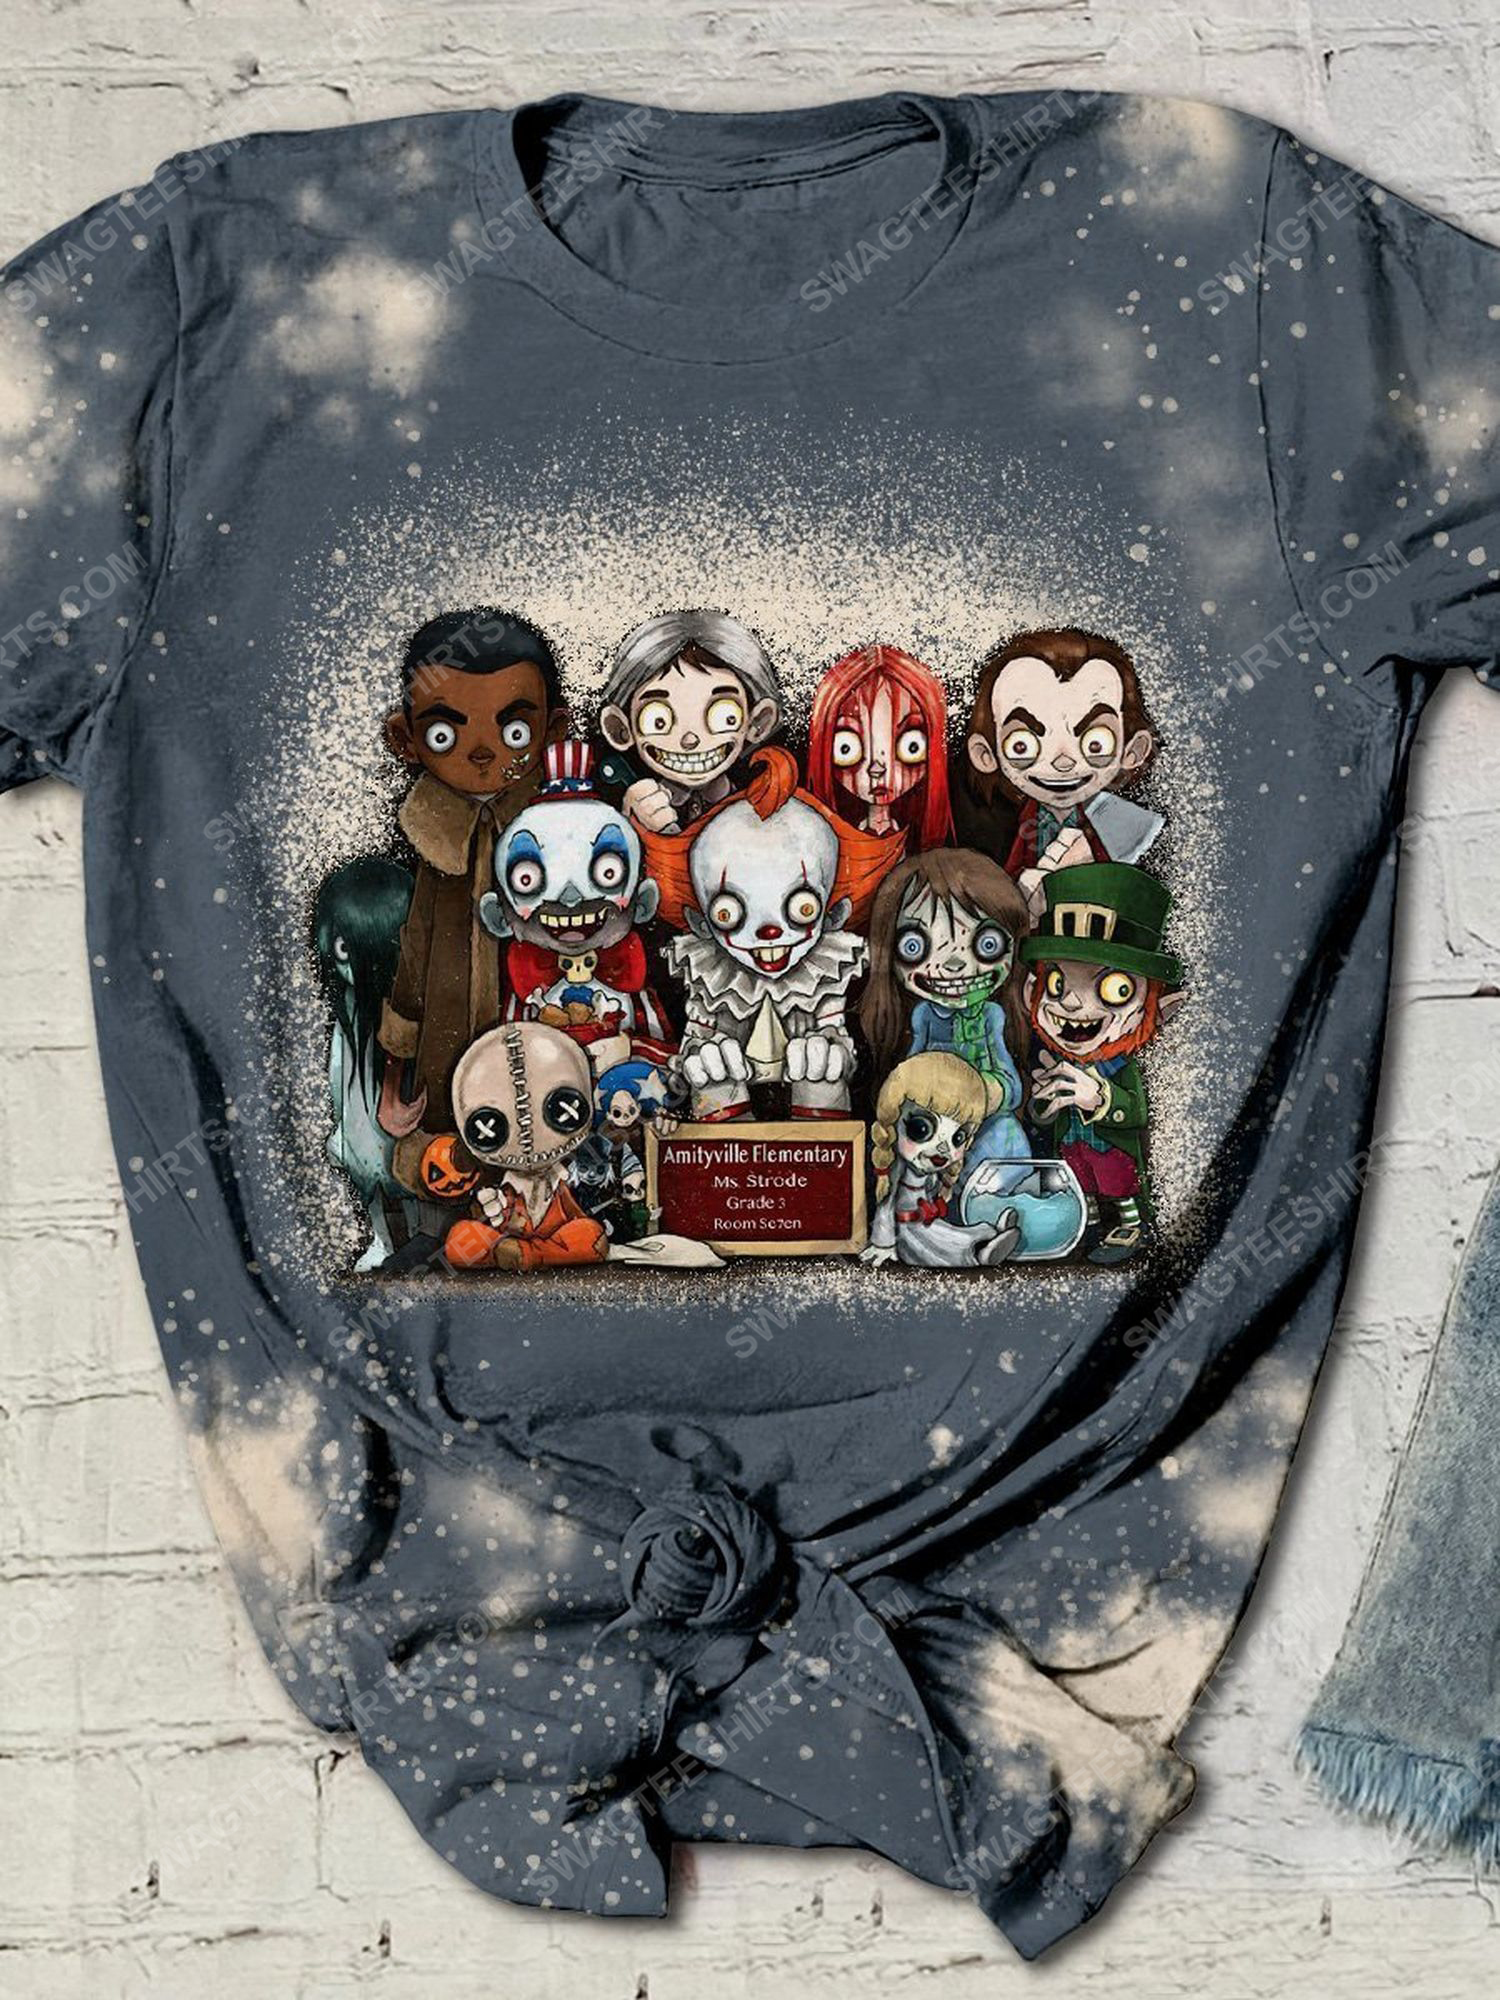 Halloween night and serial killer movies chibi bleached shirt 1 - Copy (3)